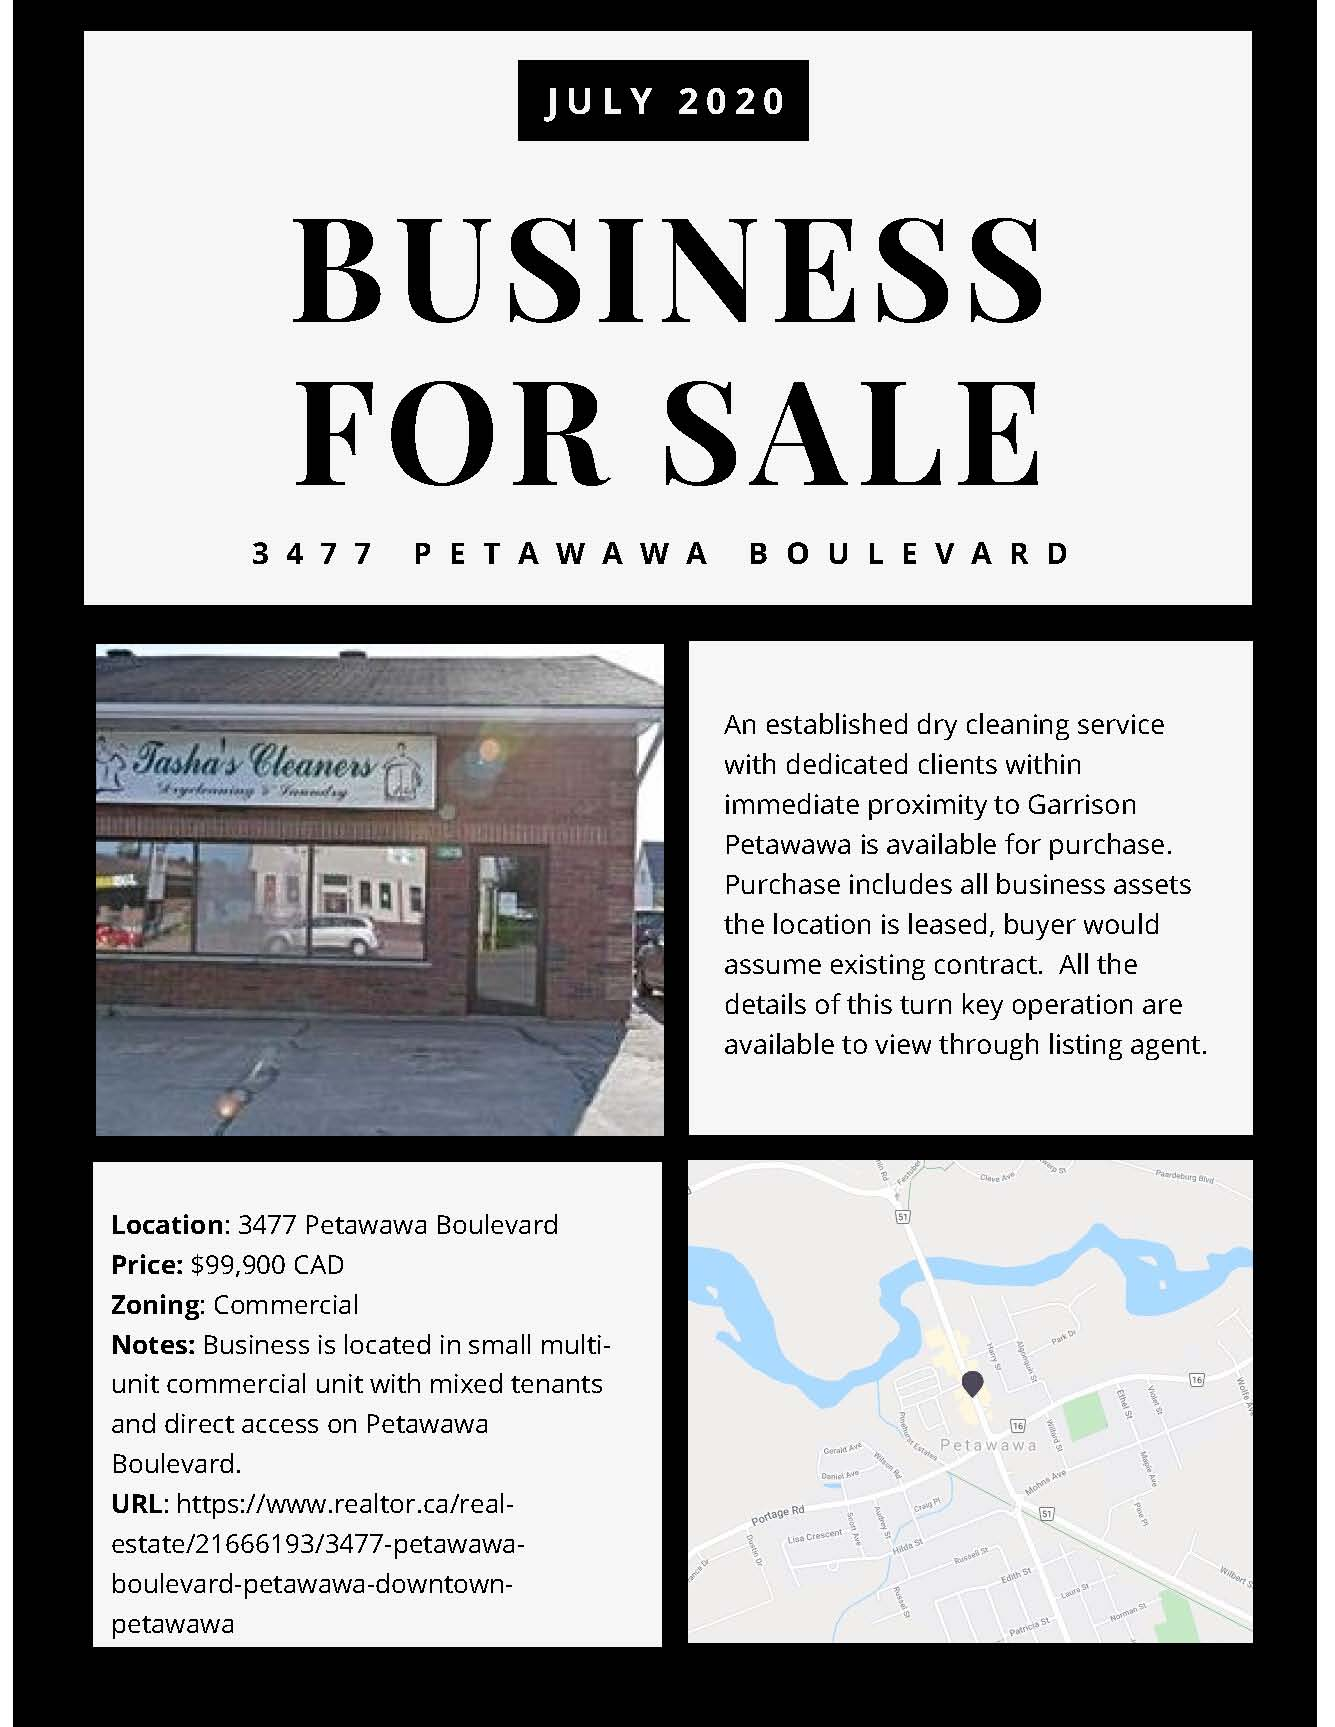 A commercial real estate listing